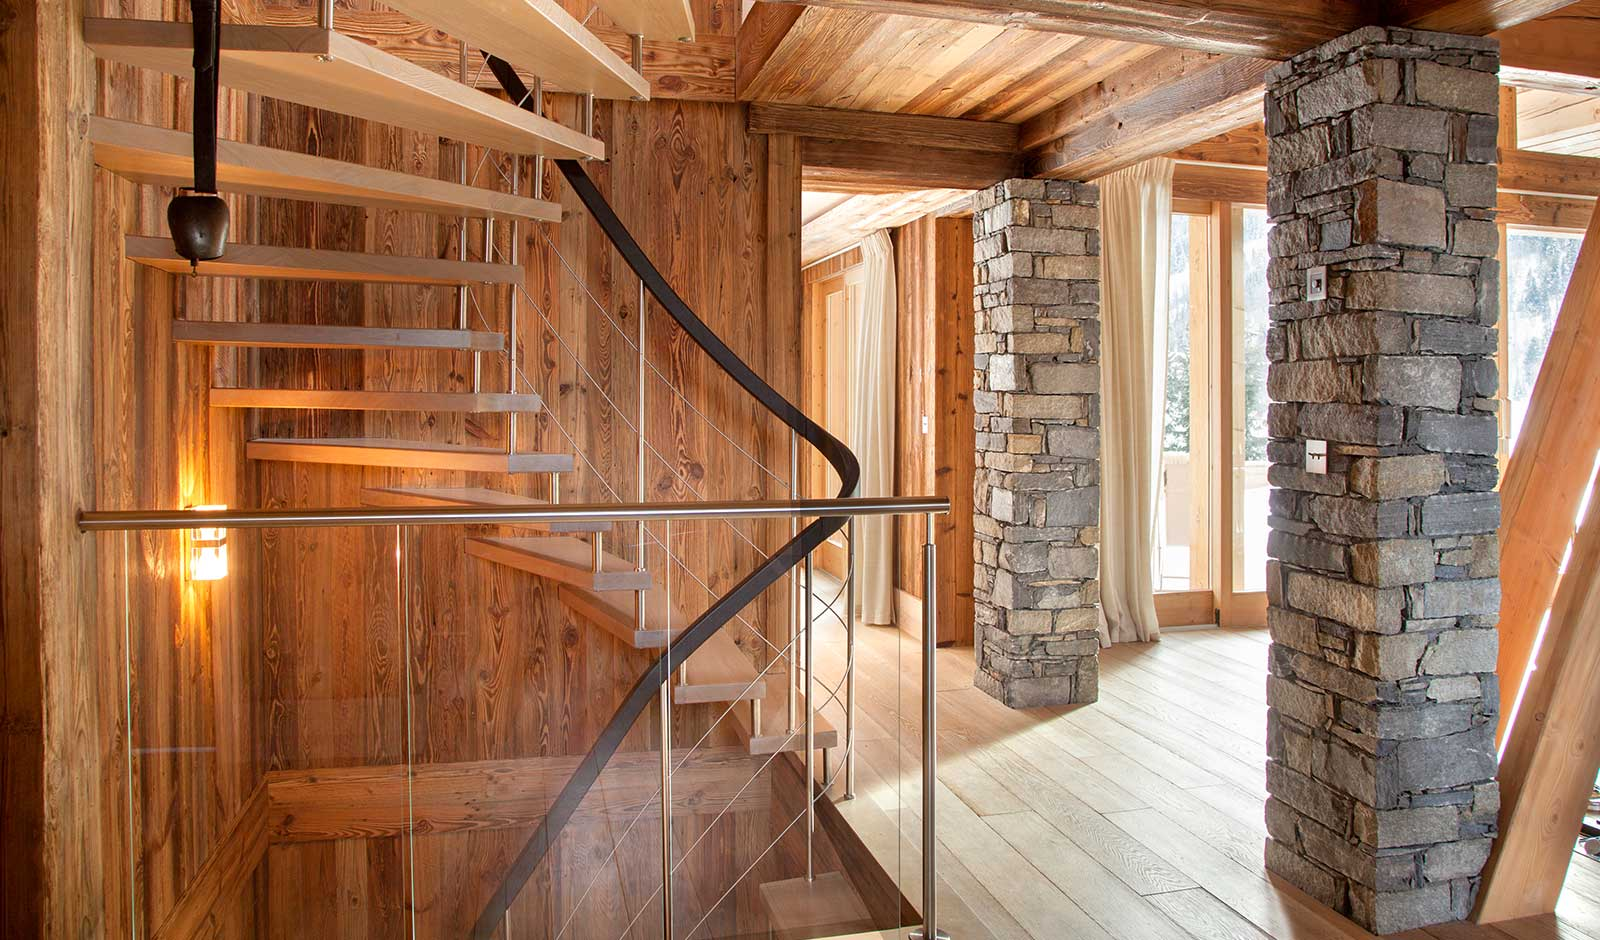 chalet-mont-tremblant-14-atelier-crea-and-co-architecte-design-project-manager-meribel-savoie